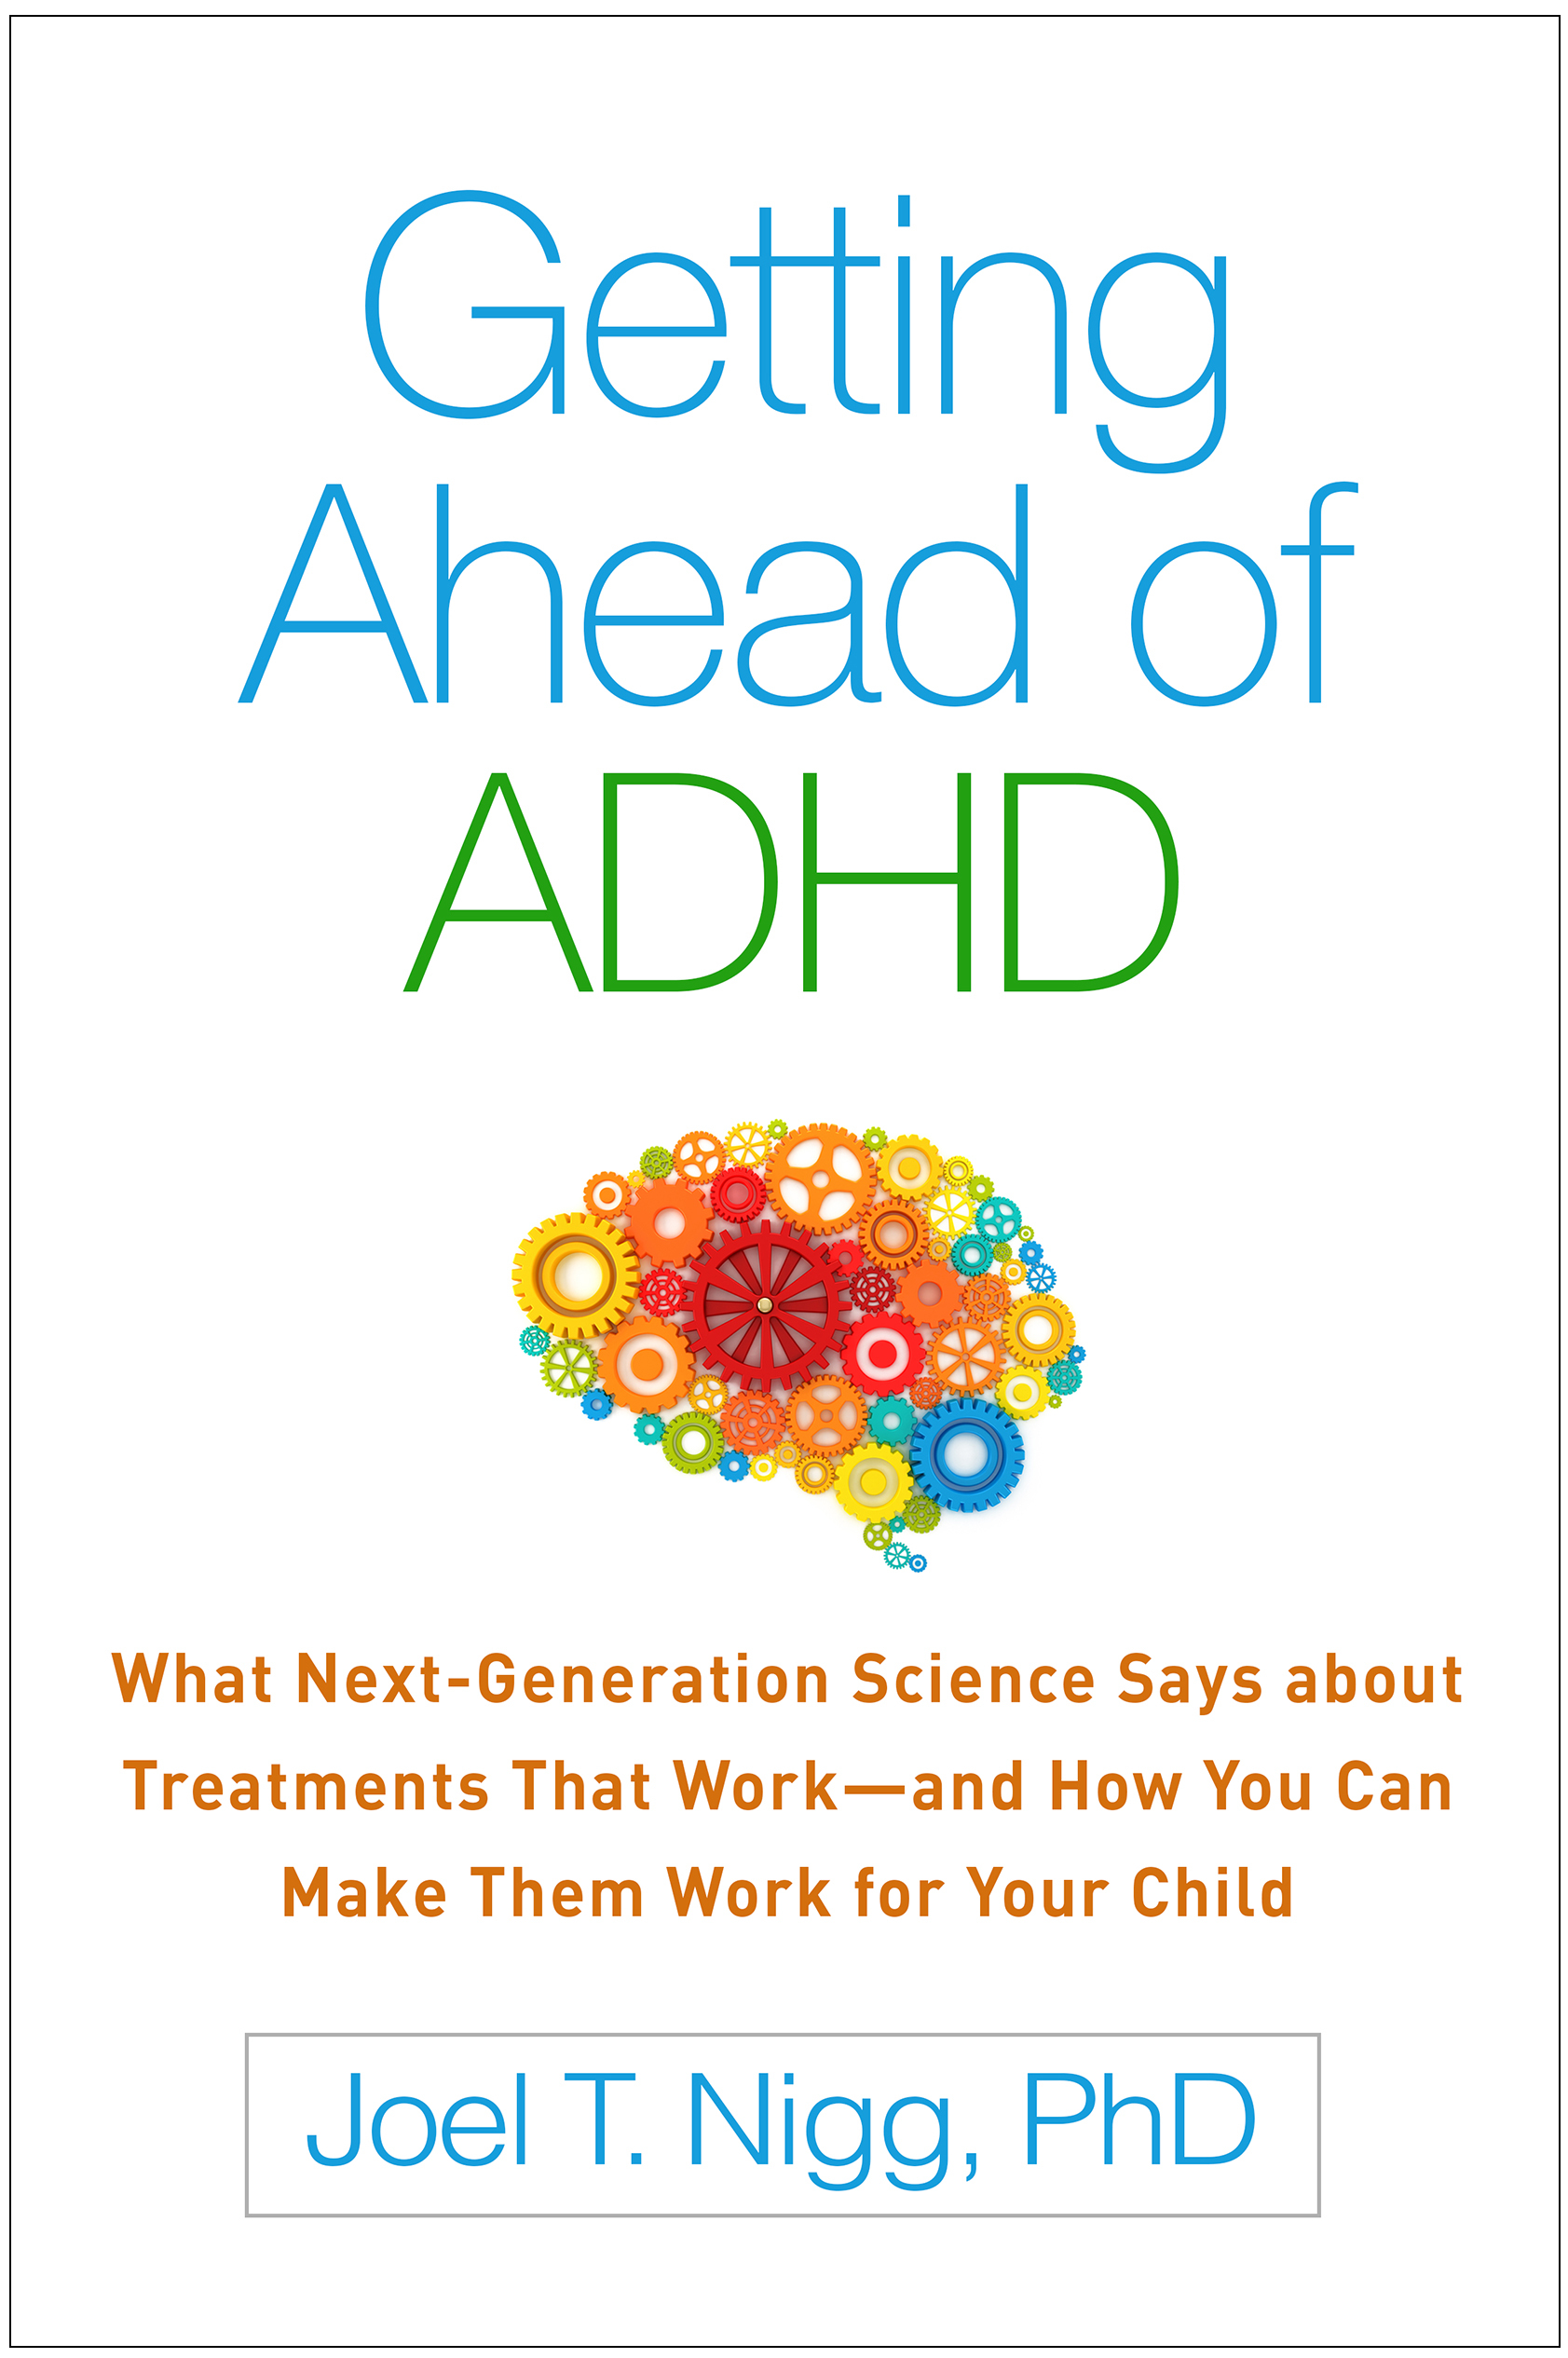 Getting Ahead of ADHD What Next-Generation Science Says about Treatments That Work-and How You Can Make Them Work for Your